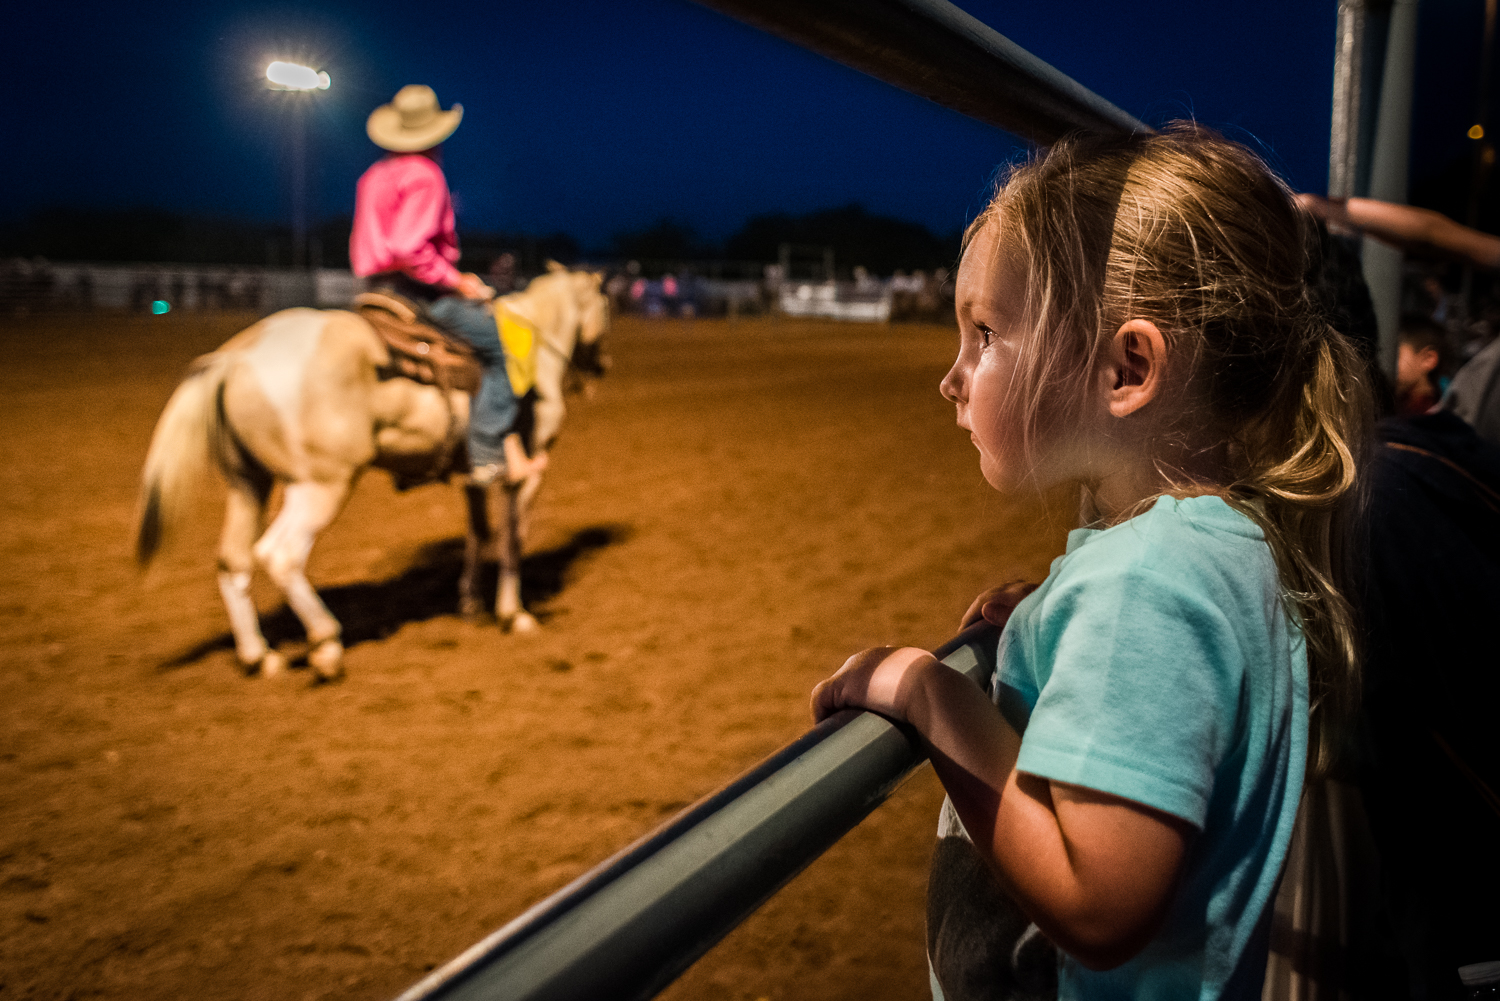 © Ayash Basu. Cowboy families come out in full swing to support and cheer for them. This young girl's Dad was one of the riders in the arena, and she couldn't take her eyes off him. Johnson City 2017.